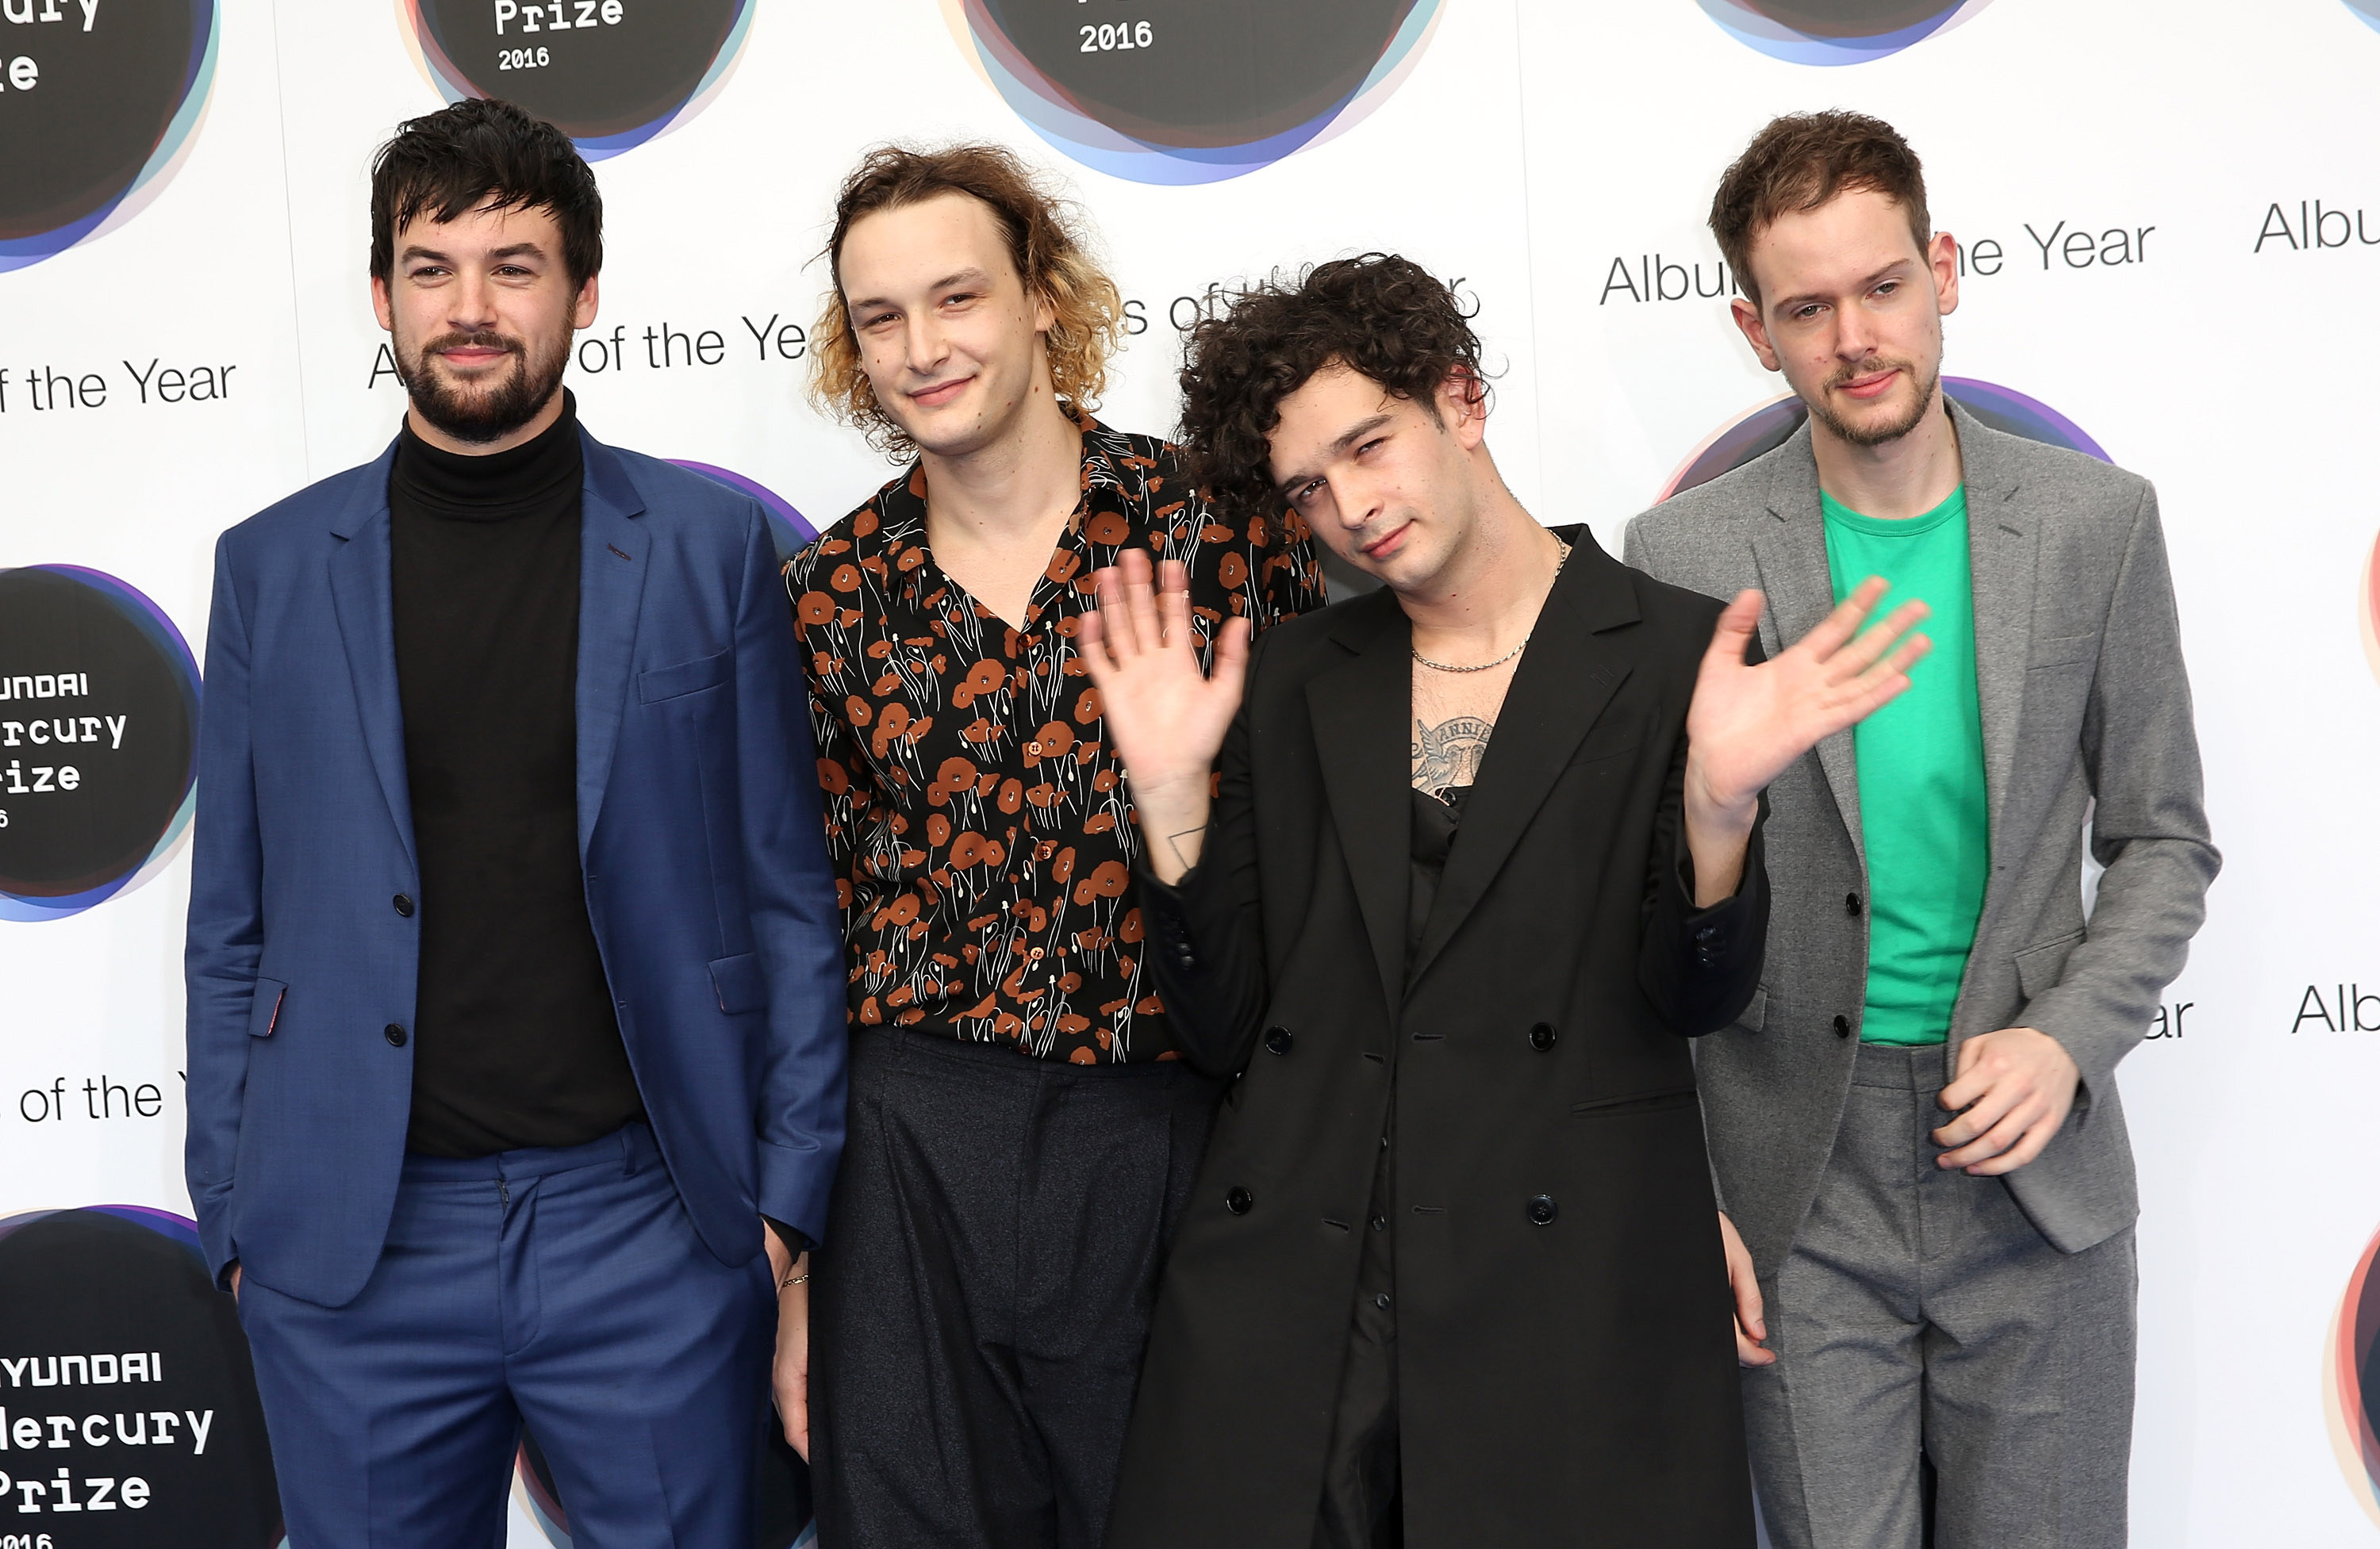 LONDON, ENGLAND - SEPTEMBER 15:  Ross MacDonald, George Daniel, Matthew Healy and Adam Hann of The 1975 pose for a photo at the Hyundai Mercury Prize 2016 at Eventim Apollo on September 15, 2016 in London, England.  (Photo by Tim P. Whitby/Getty Images)